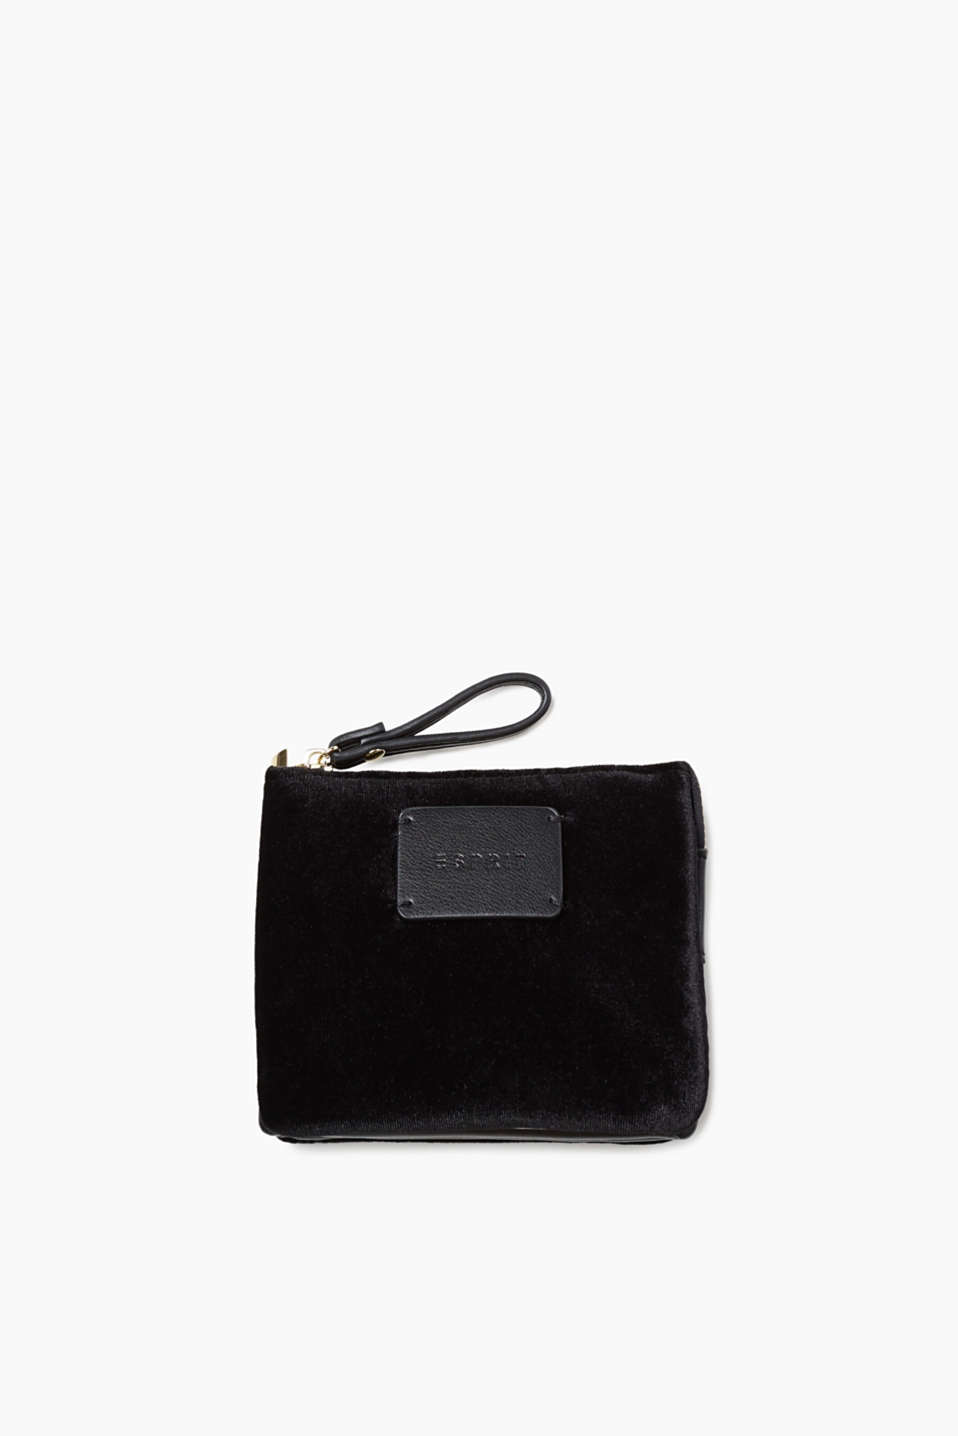 Sweet and safe: this velvet wallet with faux leather detailing and an appliquéd logo looks just like a mini clutch!